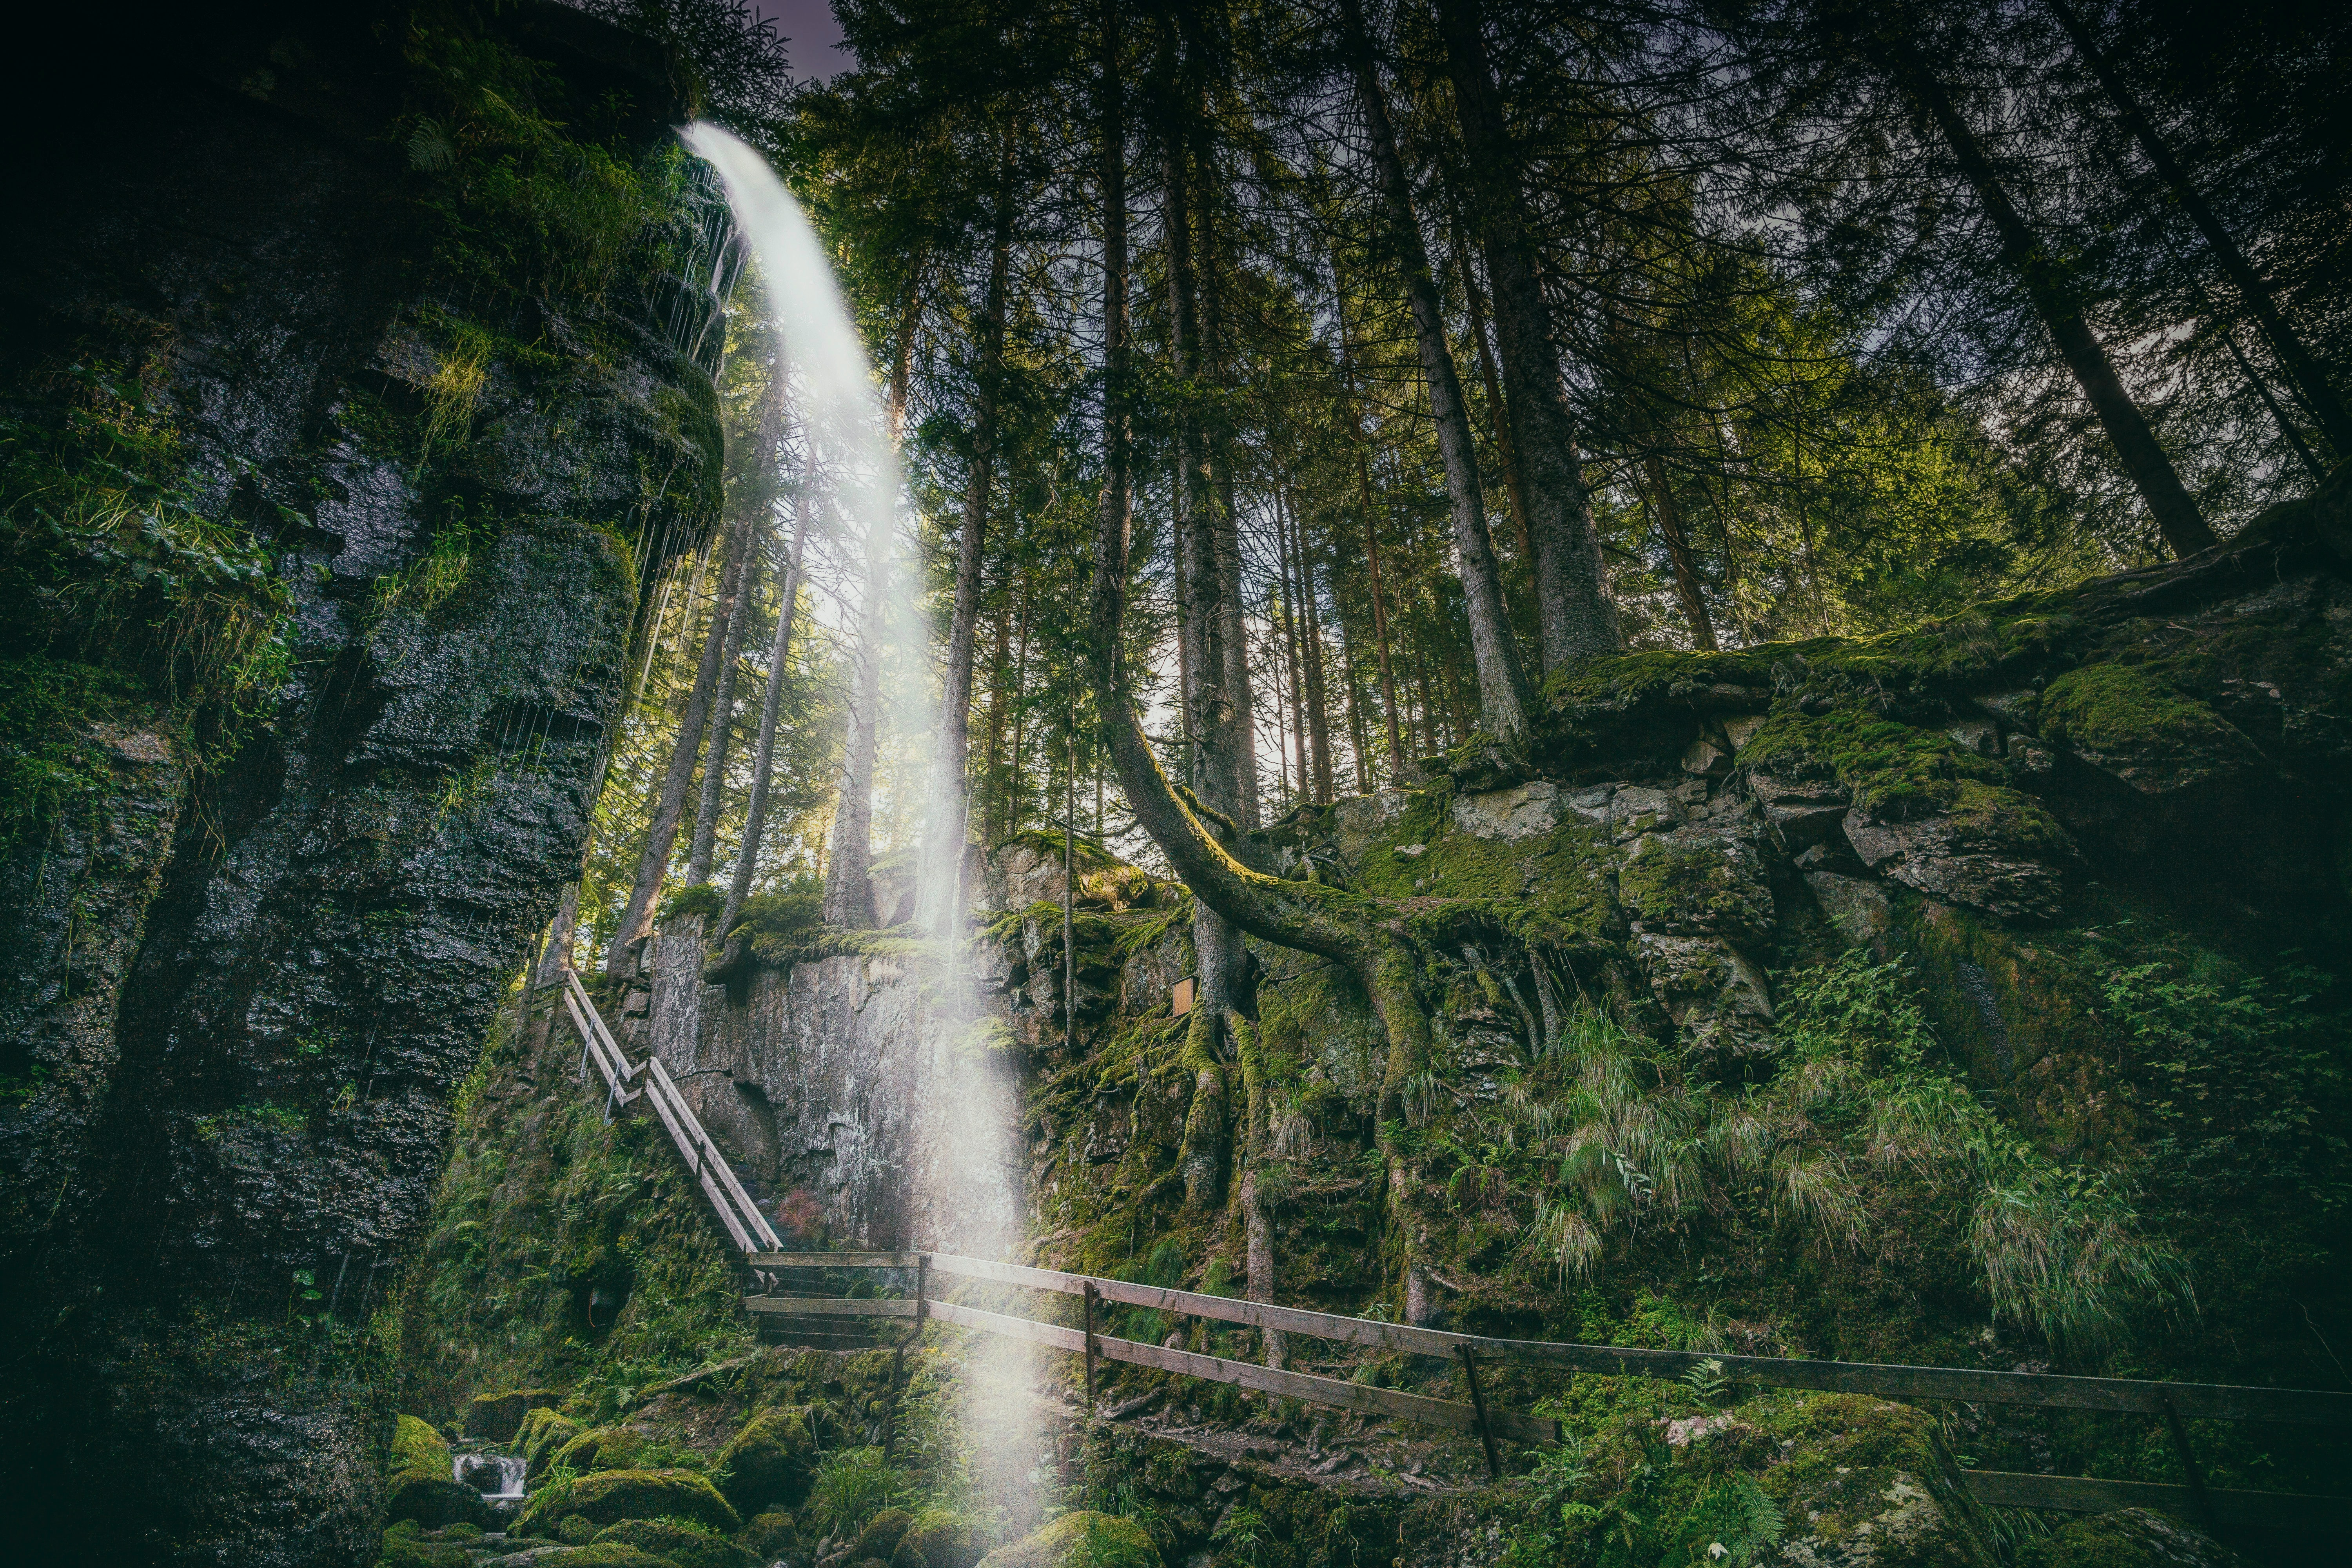 waterfall on forest